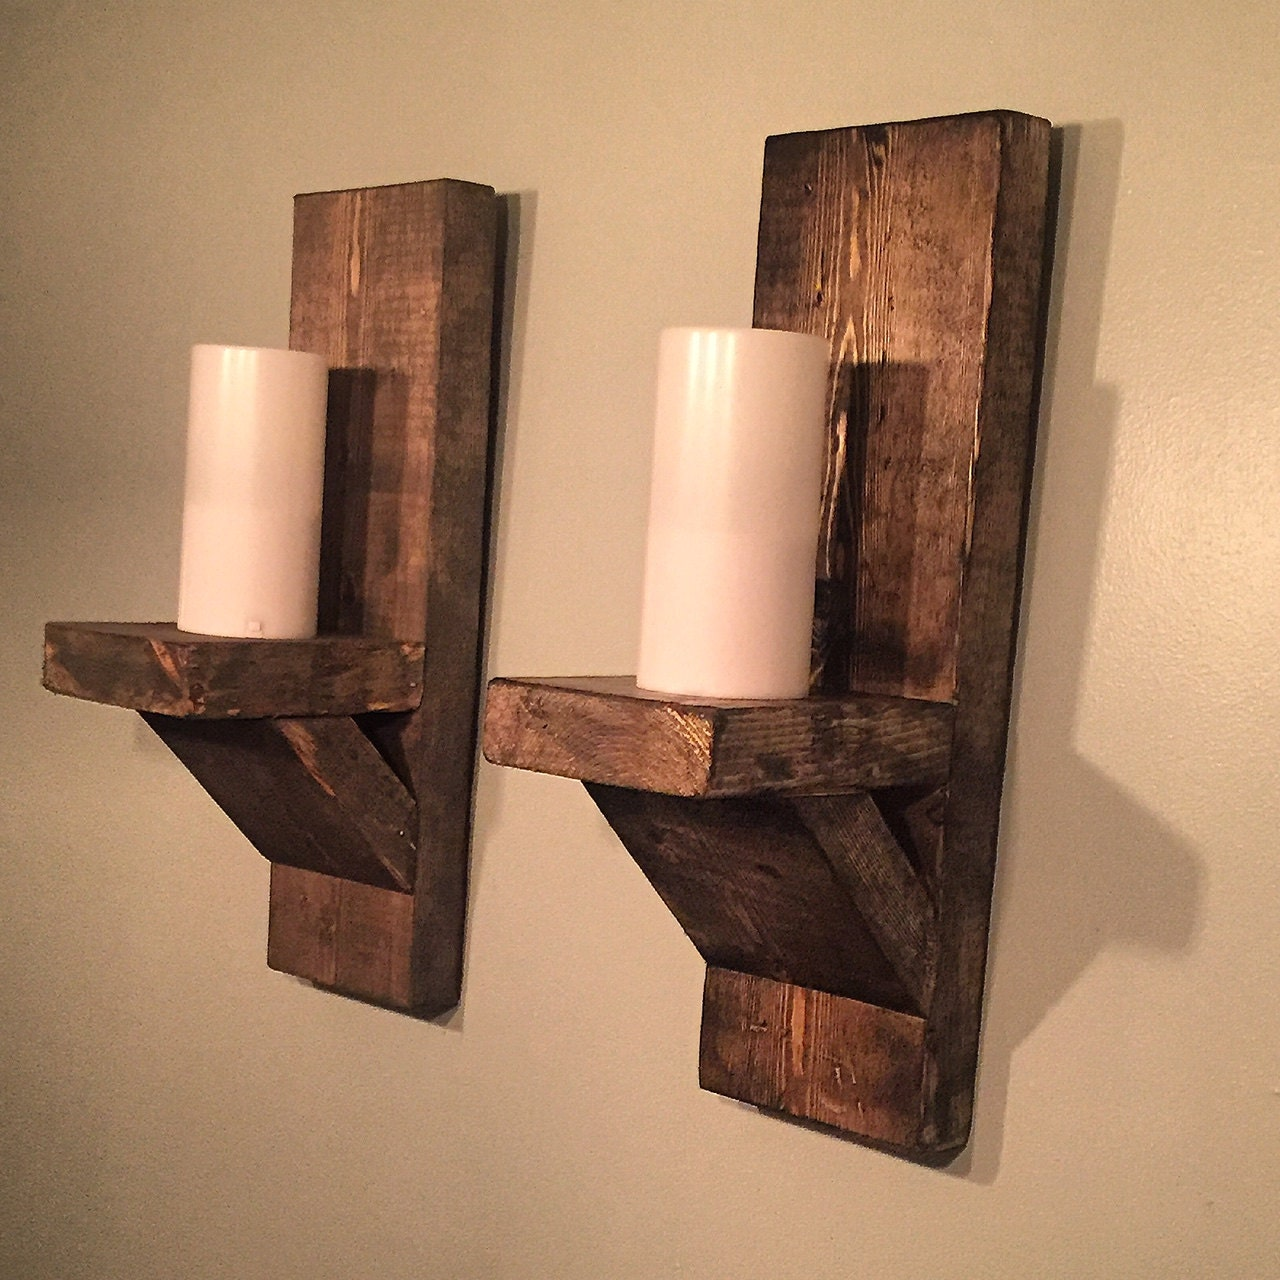 Antique Farmhouse Wall Sconces : farmhouse wall sconce - 28 images - jar farmhouse wall sconce id lights, newberry 1 light sconce ...